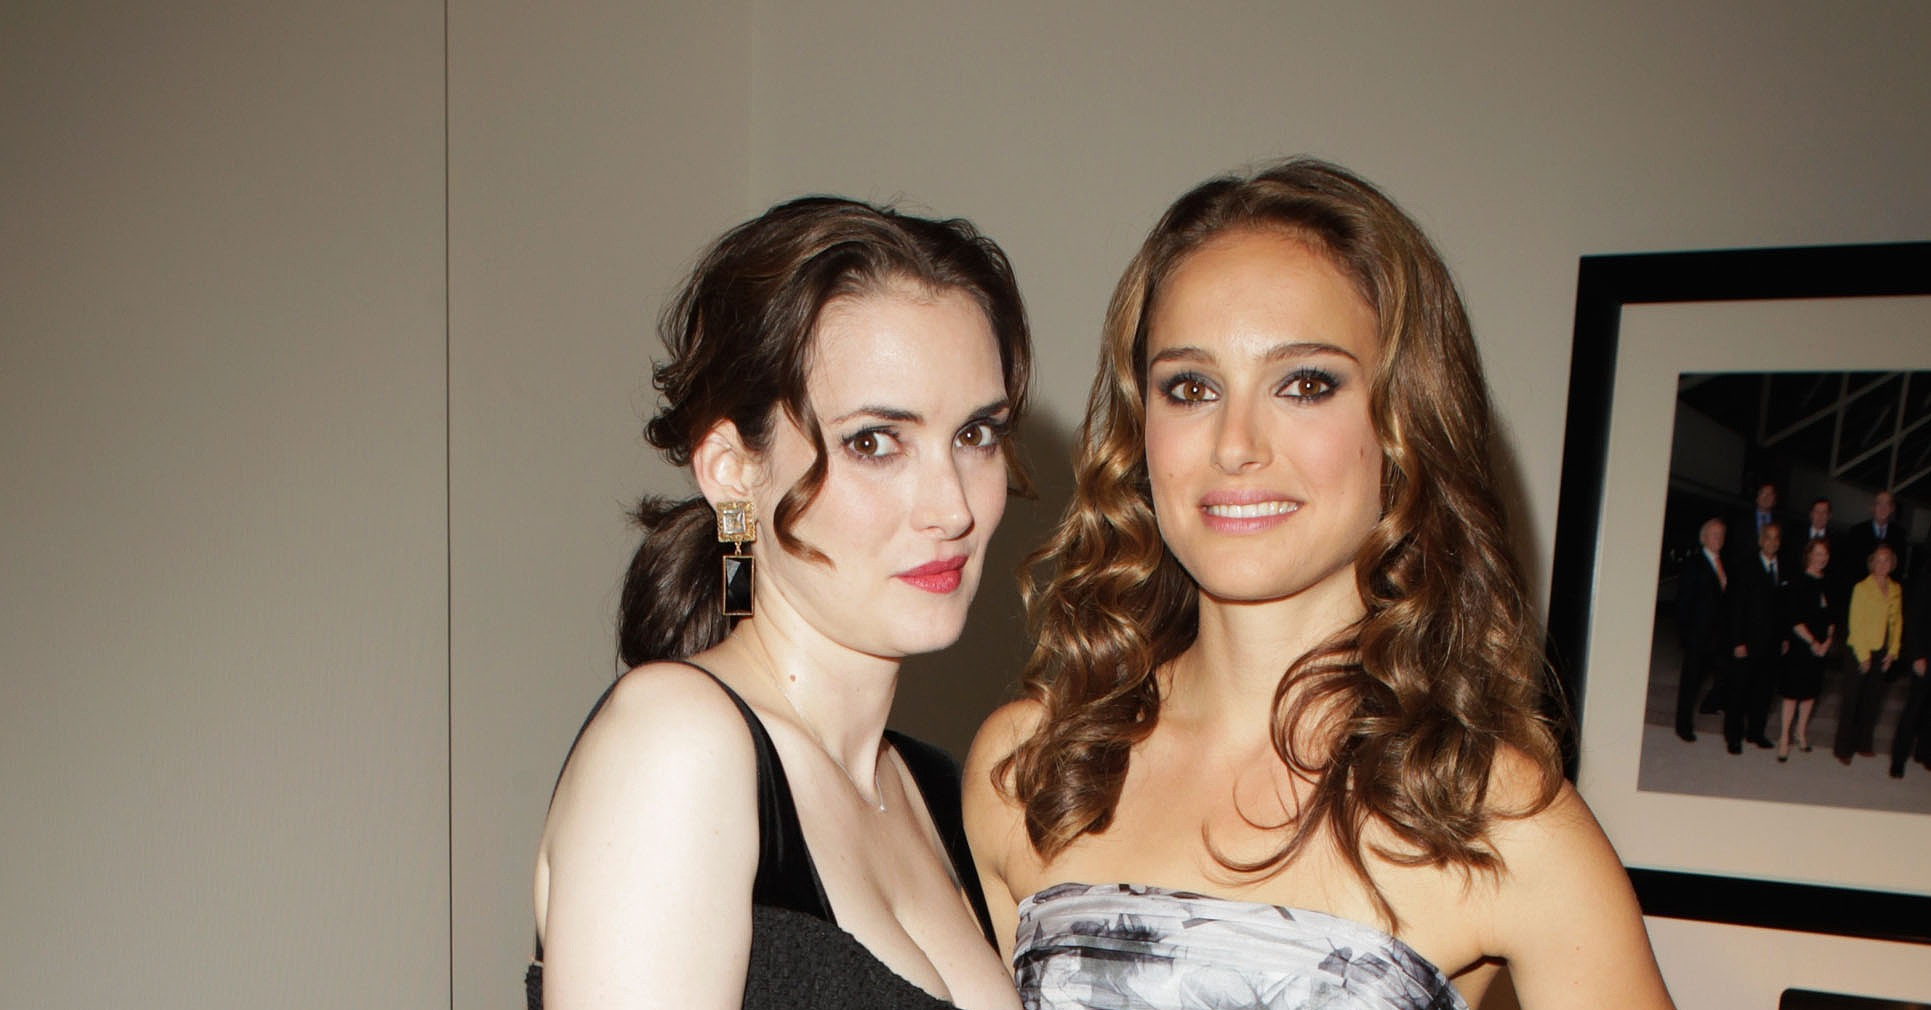 winona ryder cozied up to costar natalie portman at the 2010 tiff